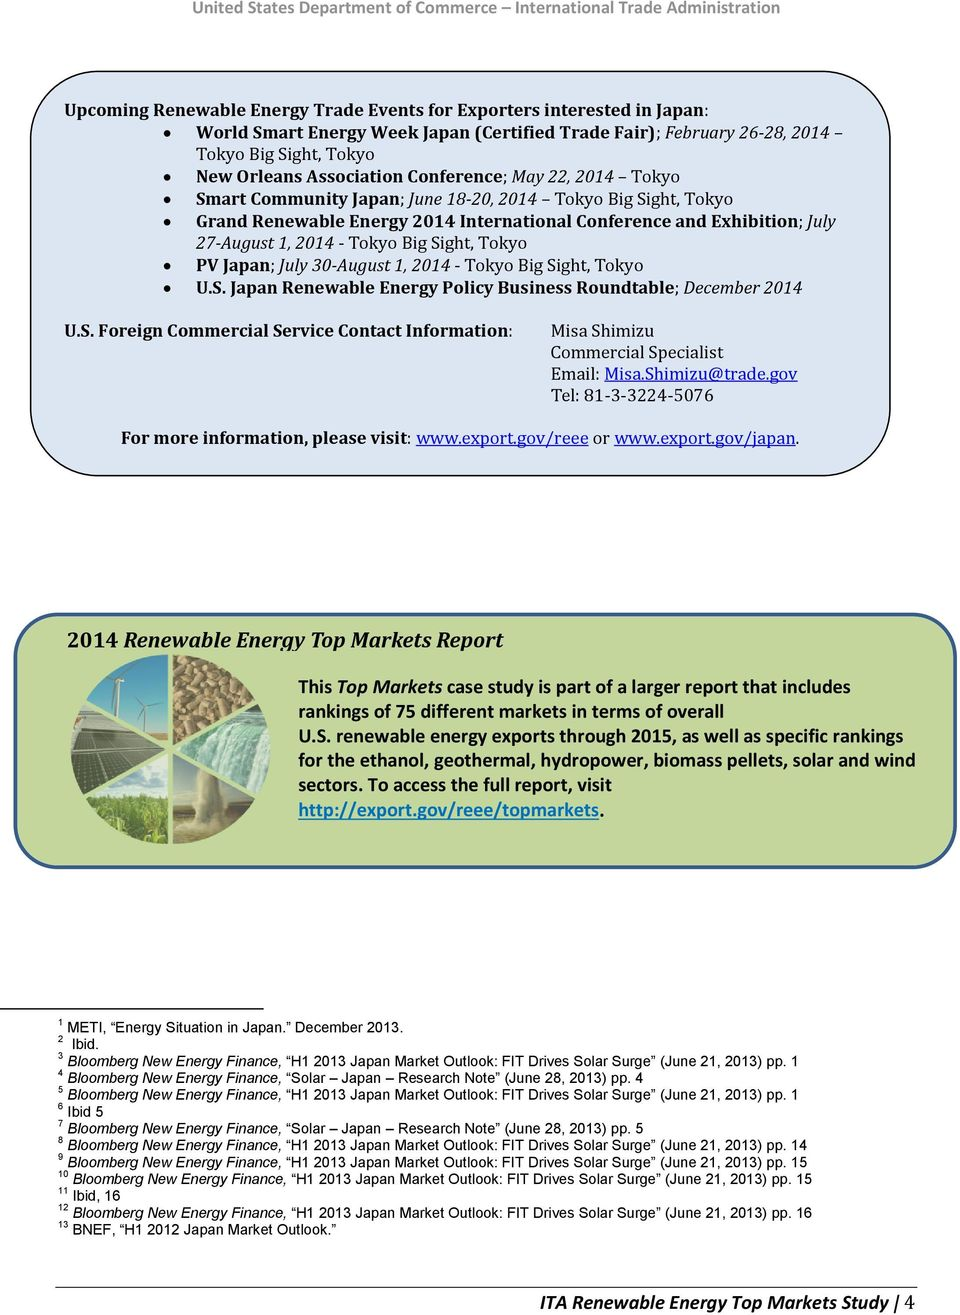 Sight, Tokyo PV Japan; July 30-August 1, 2014 - Tokyo Big Sight, Tokyo U.S. Japan Renewable Energy Policy Business Roundtable; December 2014 U.S. Foreign Commercial Service Contact Information: Misa Shimizu Commercial Specialist Email: Misa.